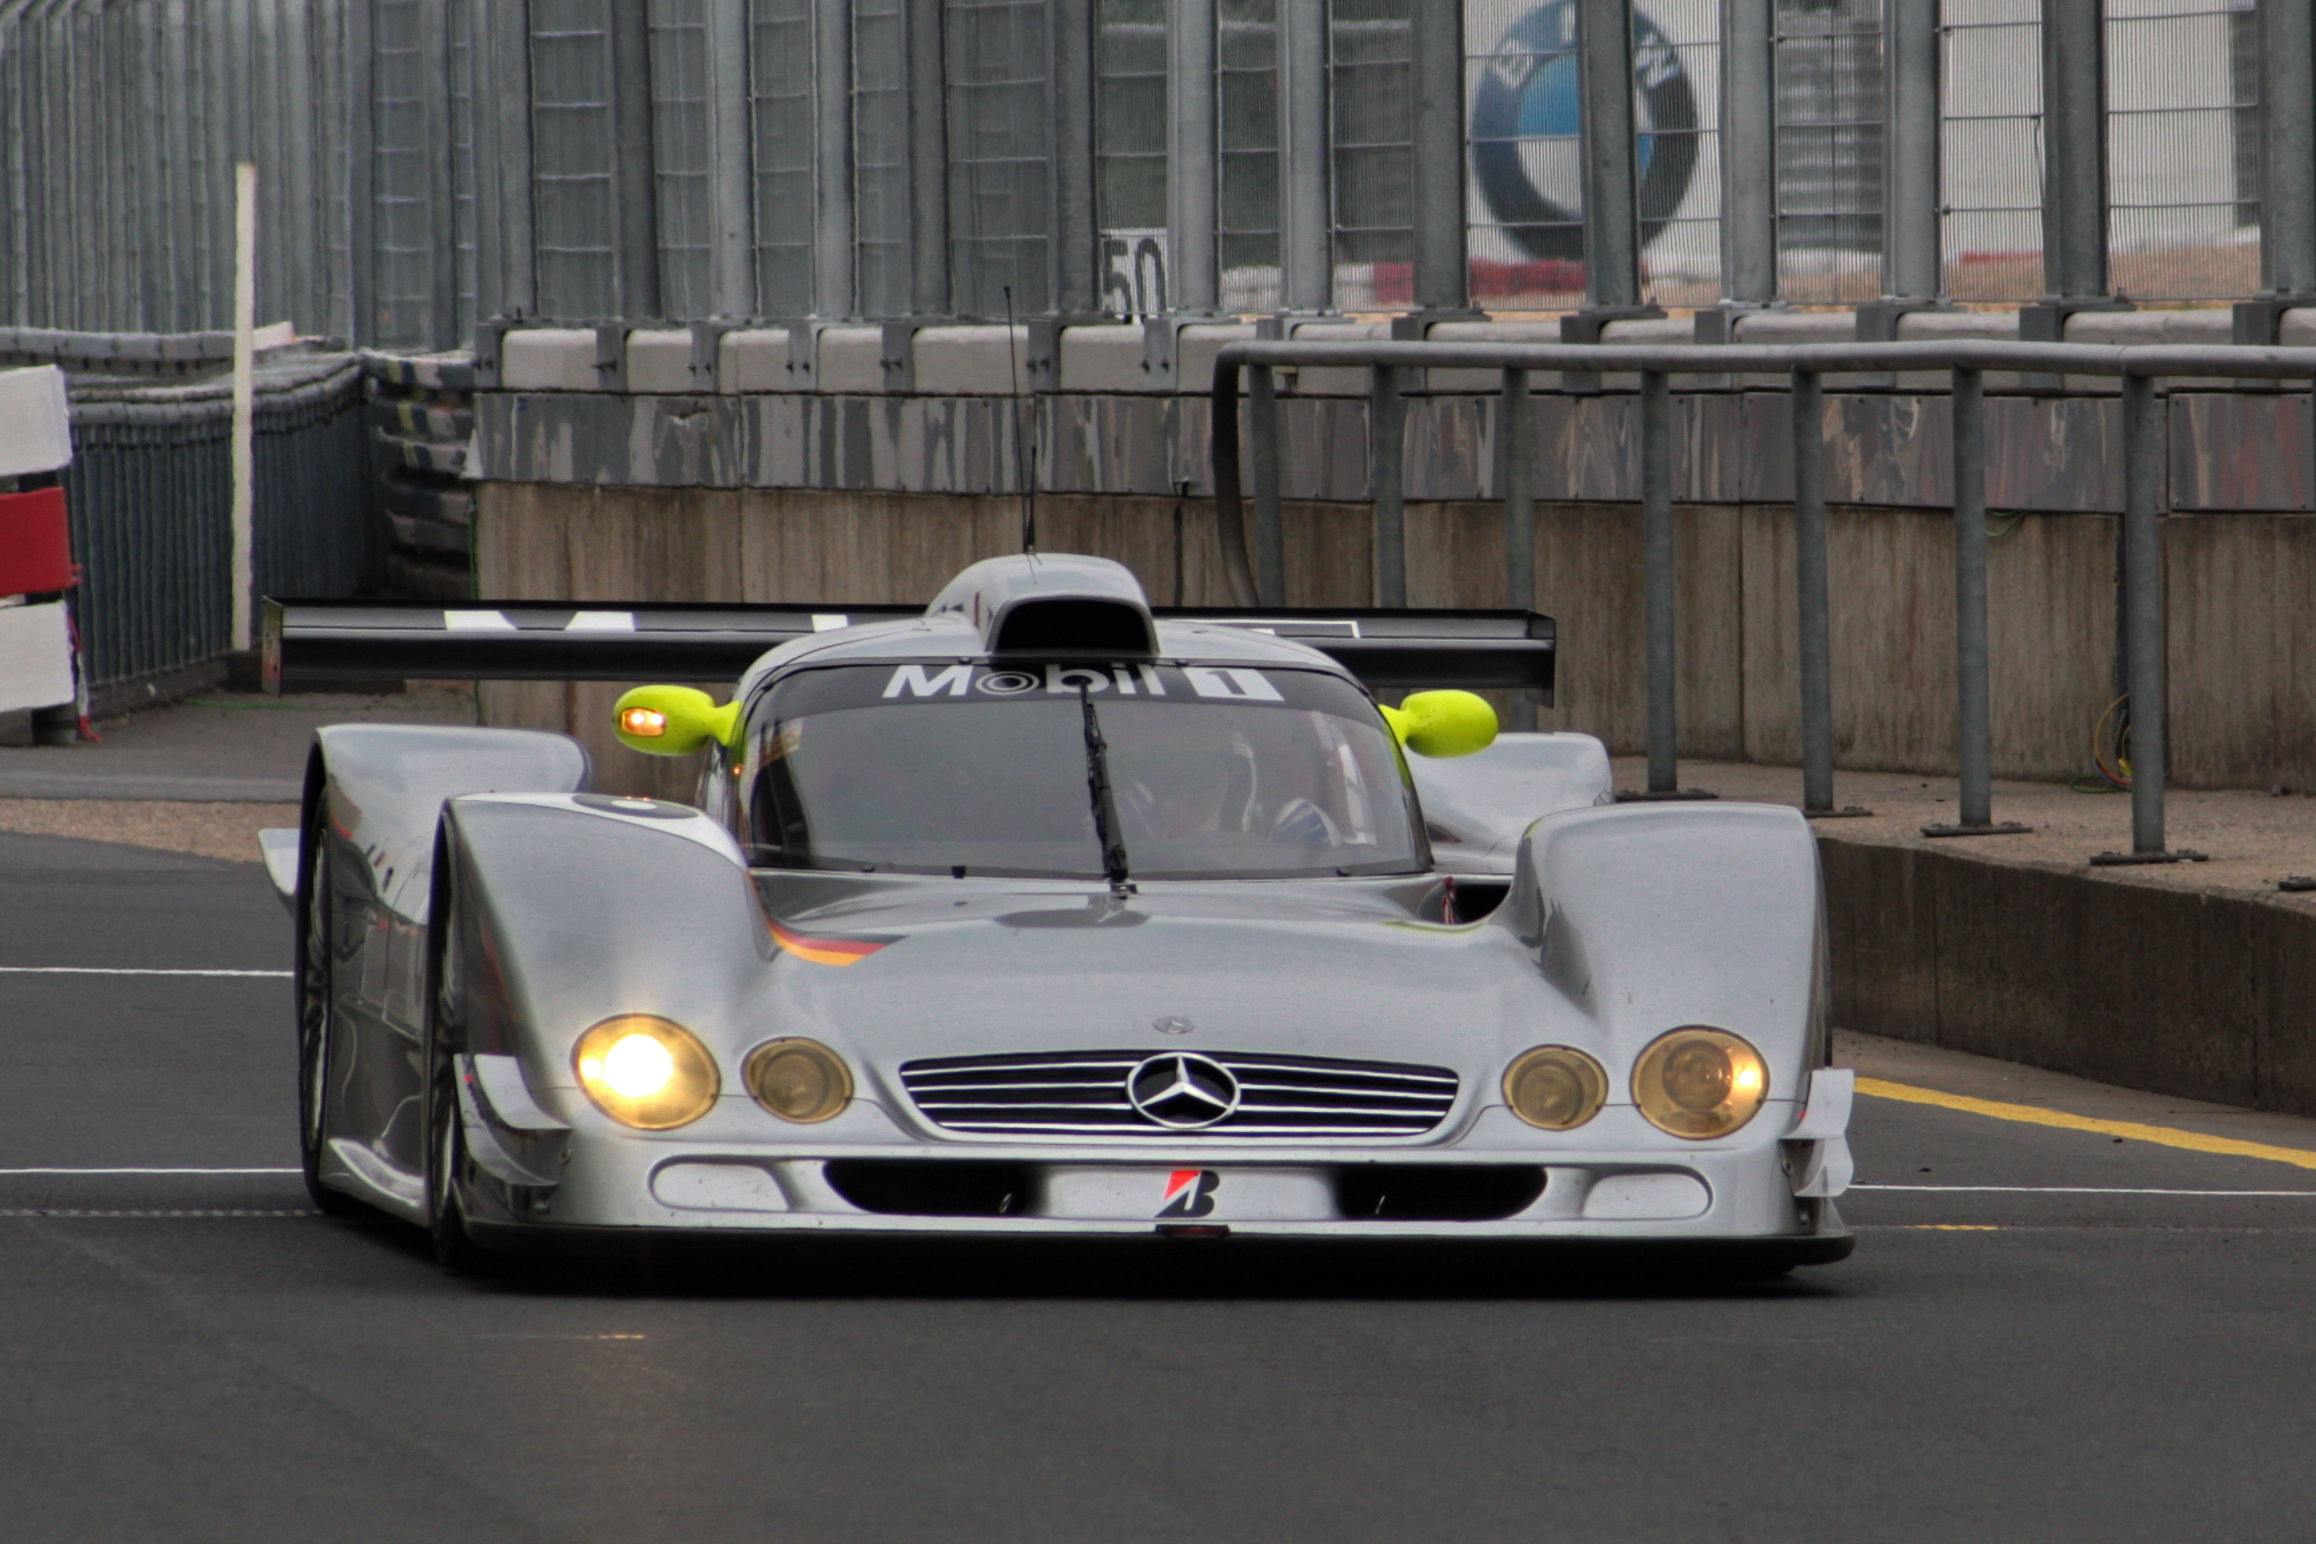 Mercedes-Benz CLR front 2009 Nurburgring